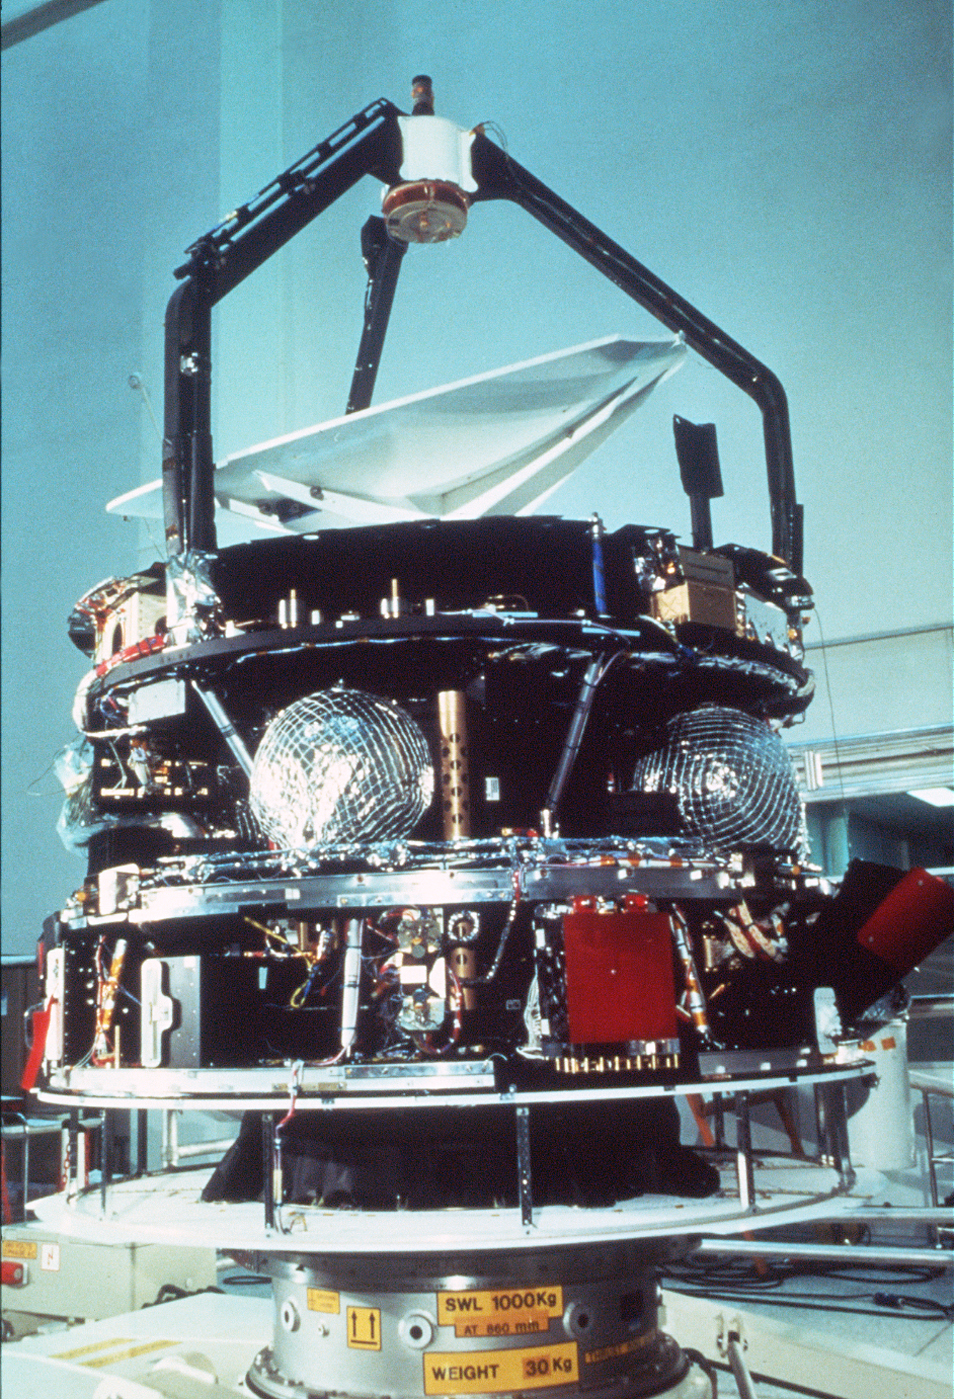 giotto spacecraft - photo #17